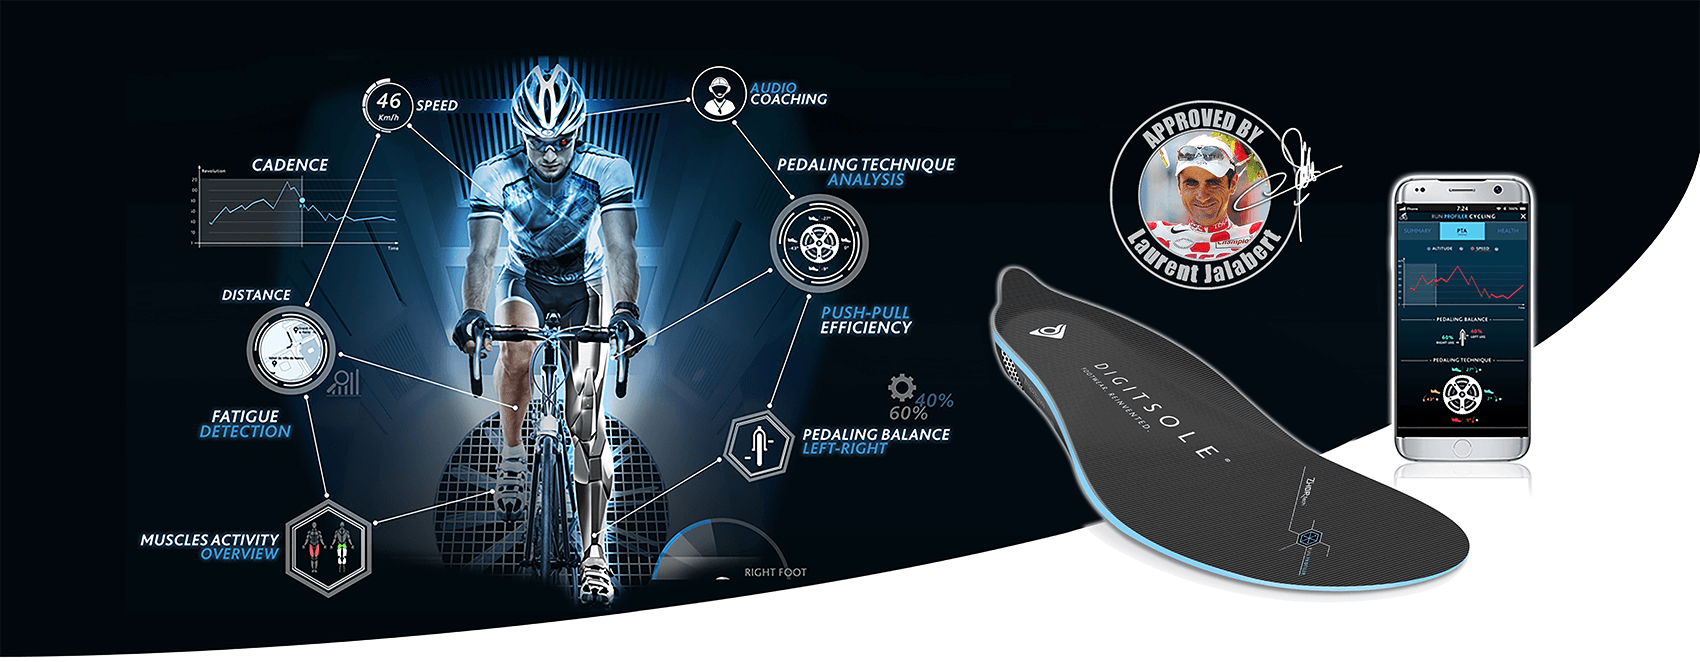 Run Profiler Cycling connected insole cycling